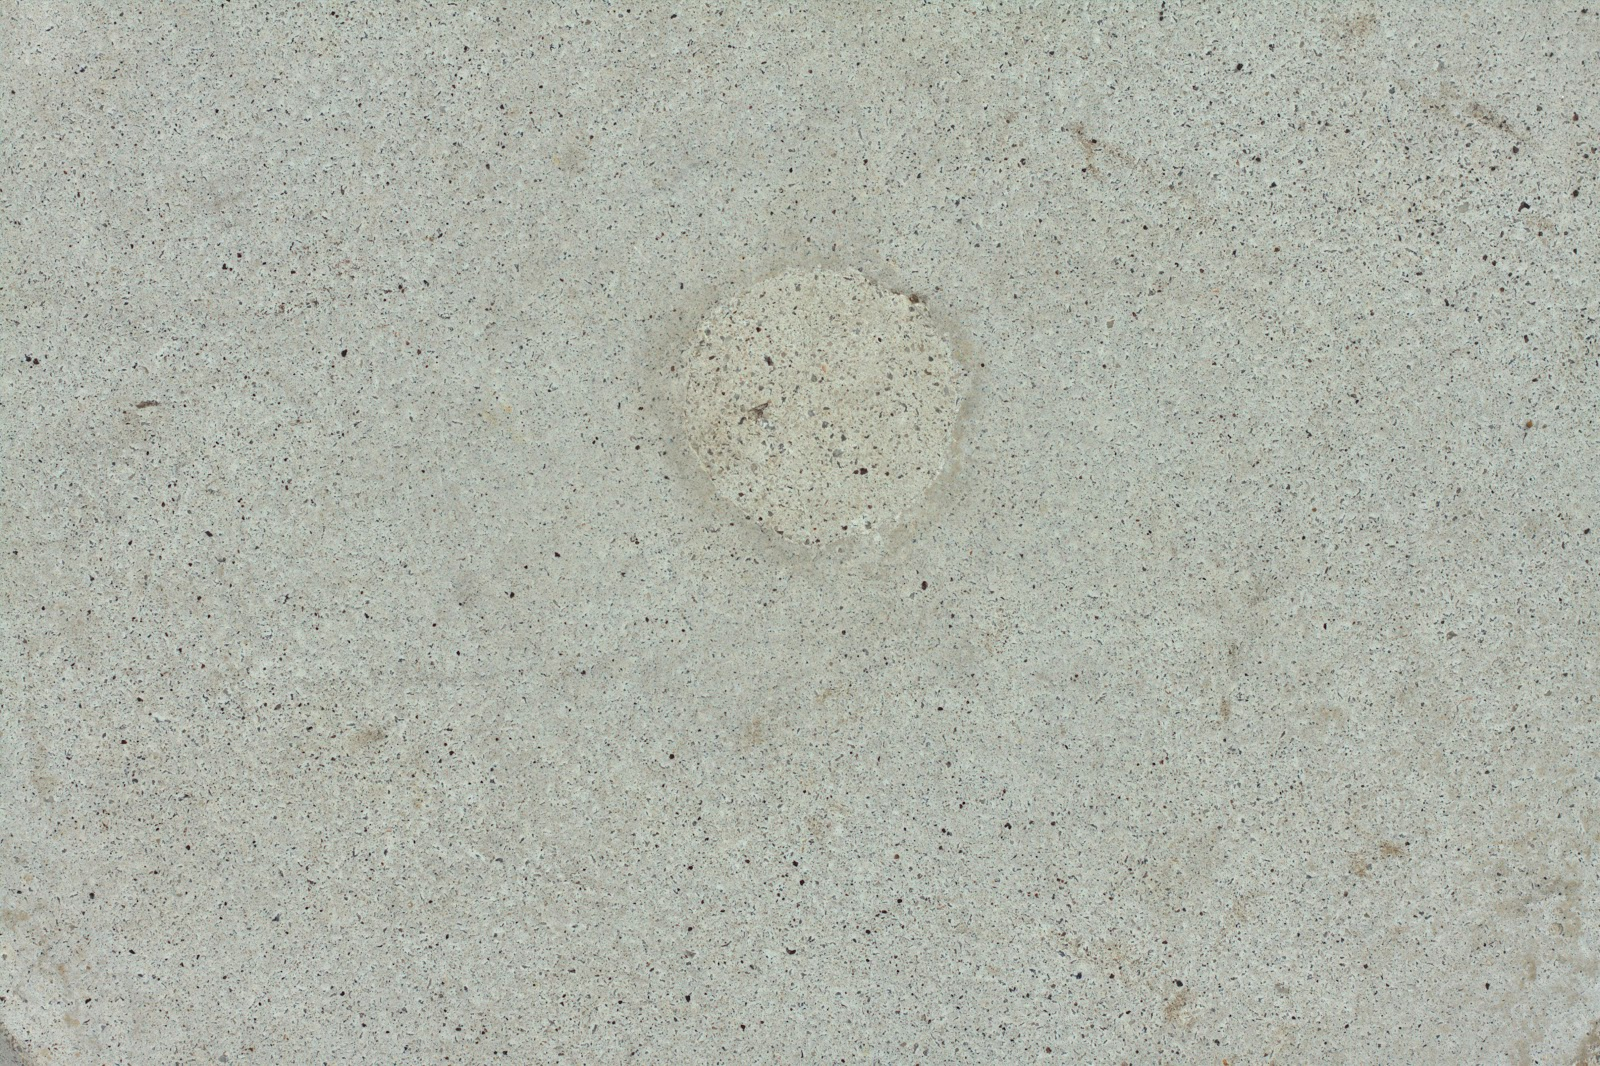 Stained Concrete Floor Texture Concrete Stained Dirty Texture